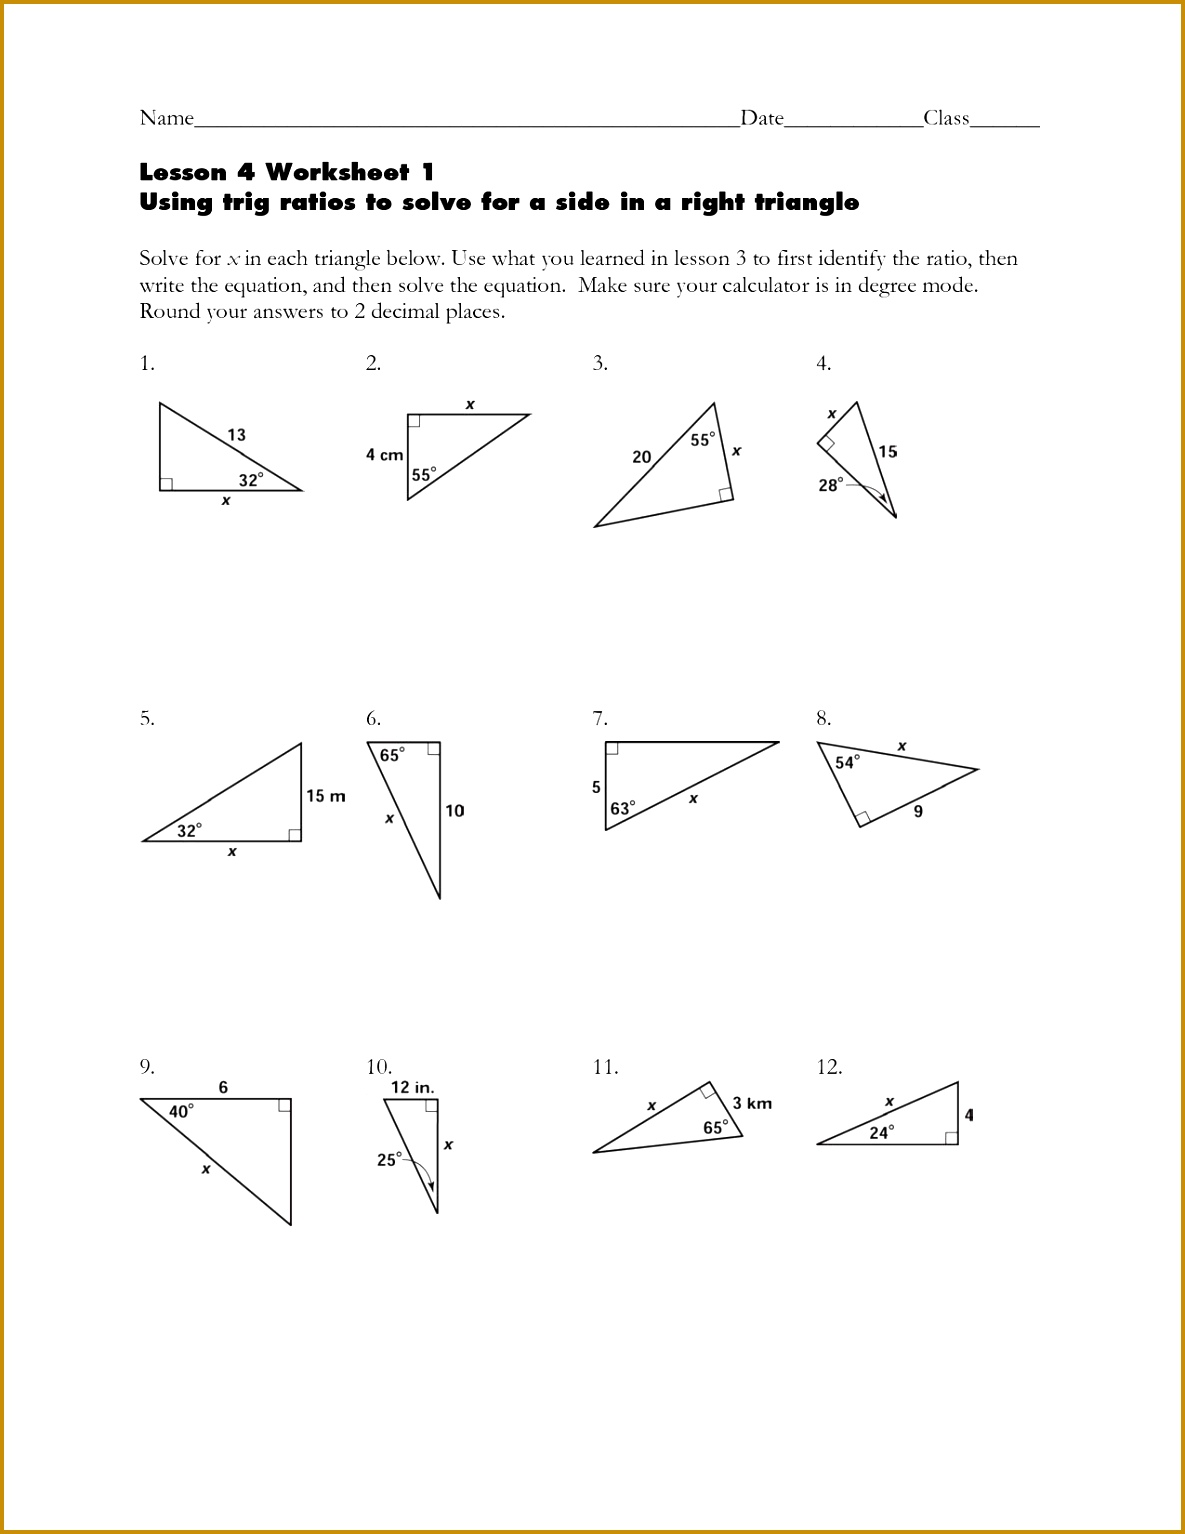 Worksheet Trig Ratios In Right Triangles Answers